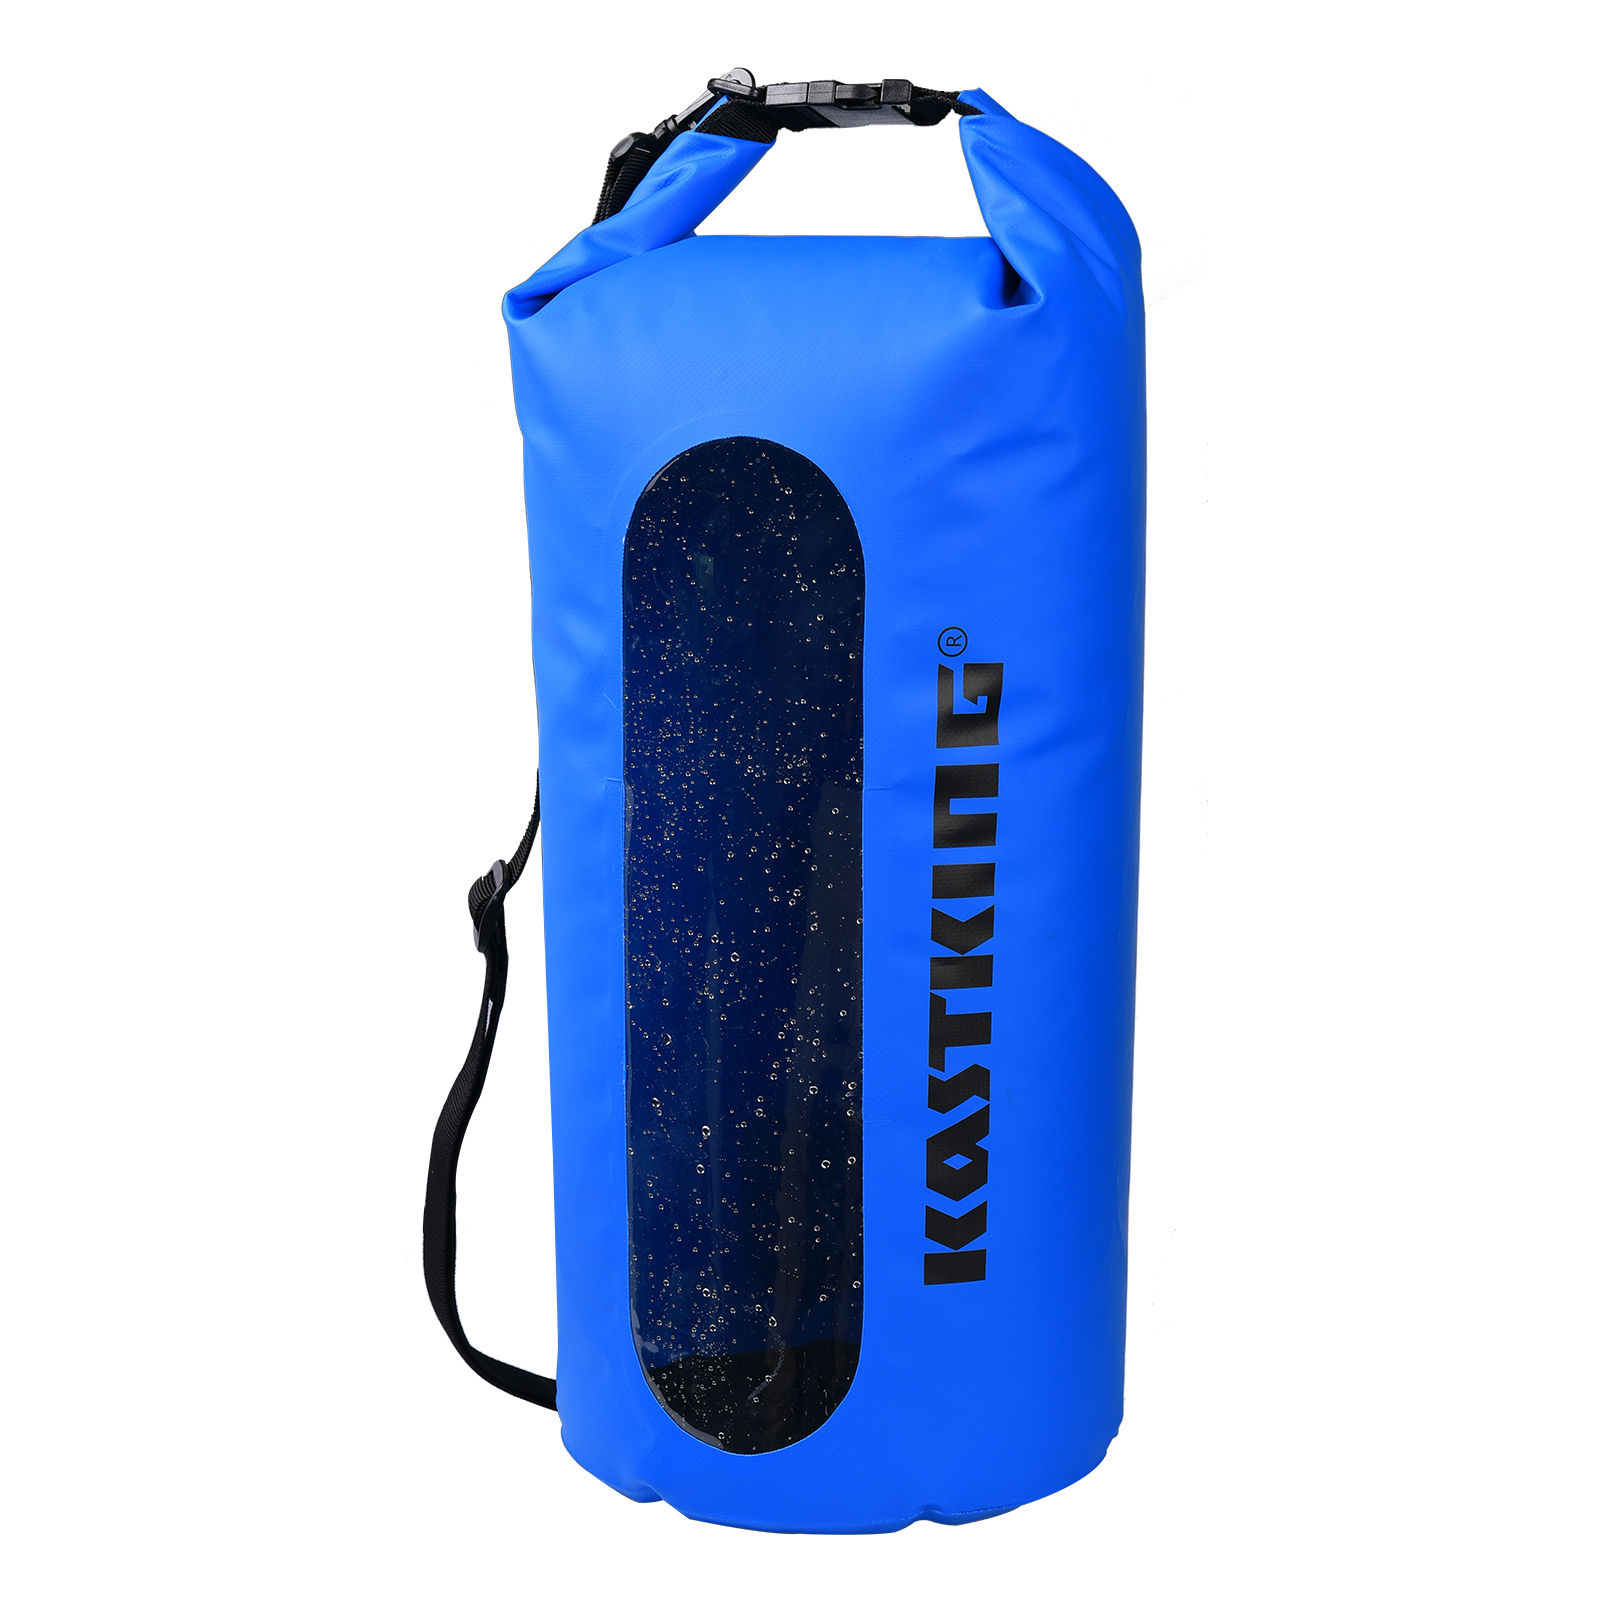 Waterproof Dry Bag Roll Top Survival Sack Kit Dry Gear Bag Camping Equipment blue 10L by LESHP